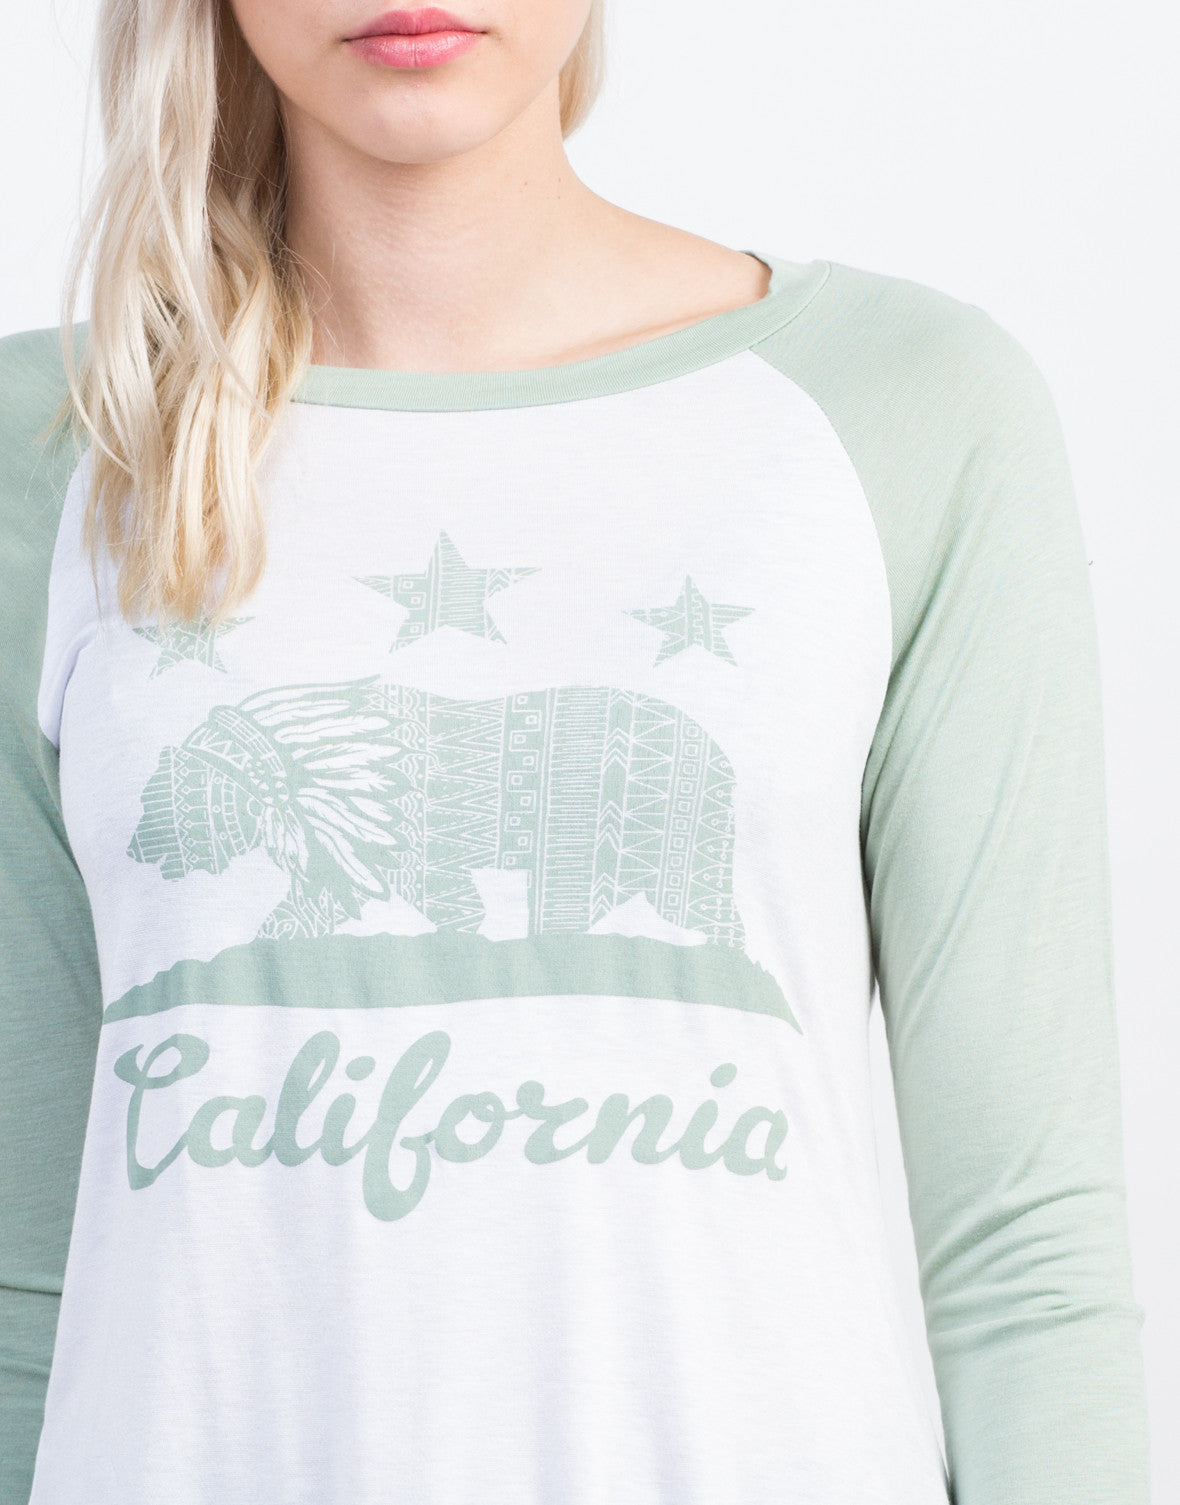 Detail of California Baseball Tee